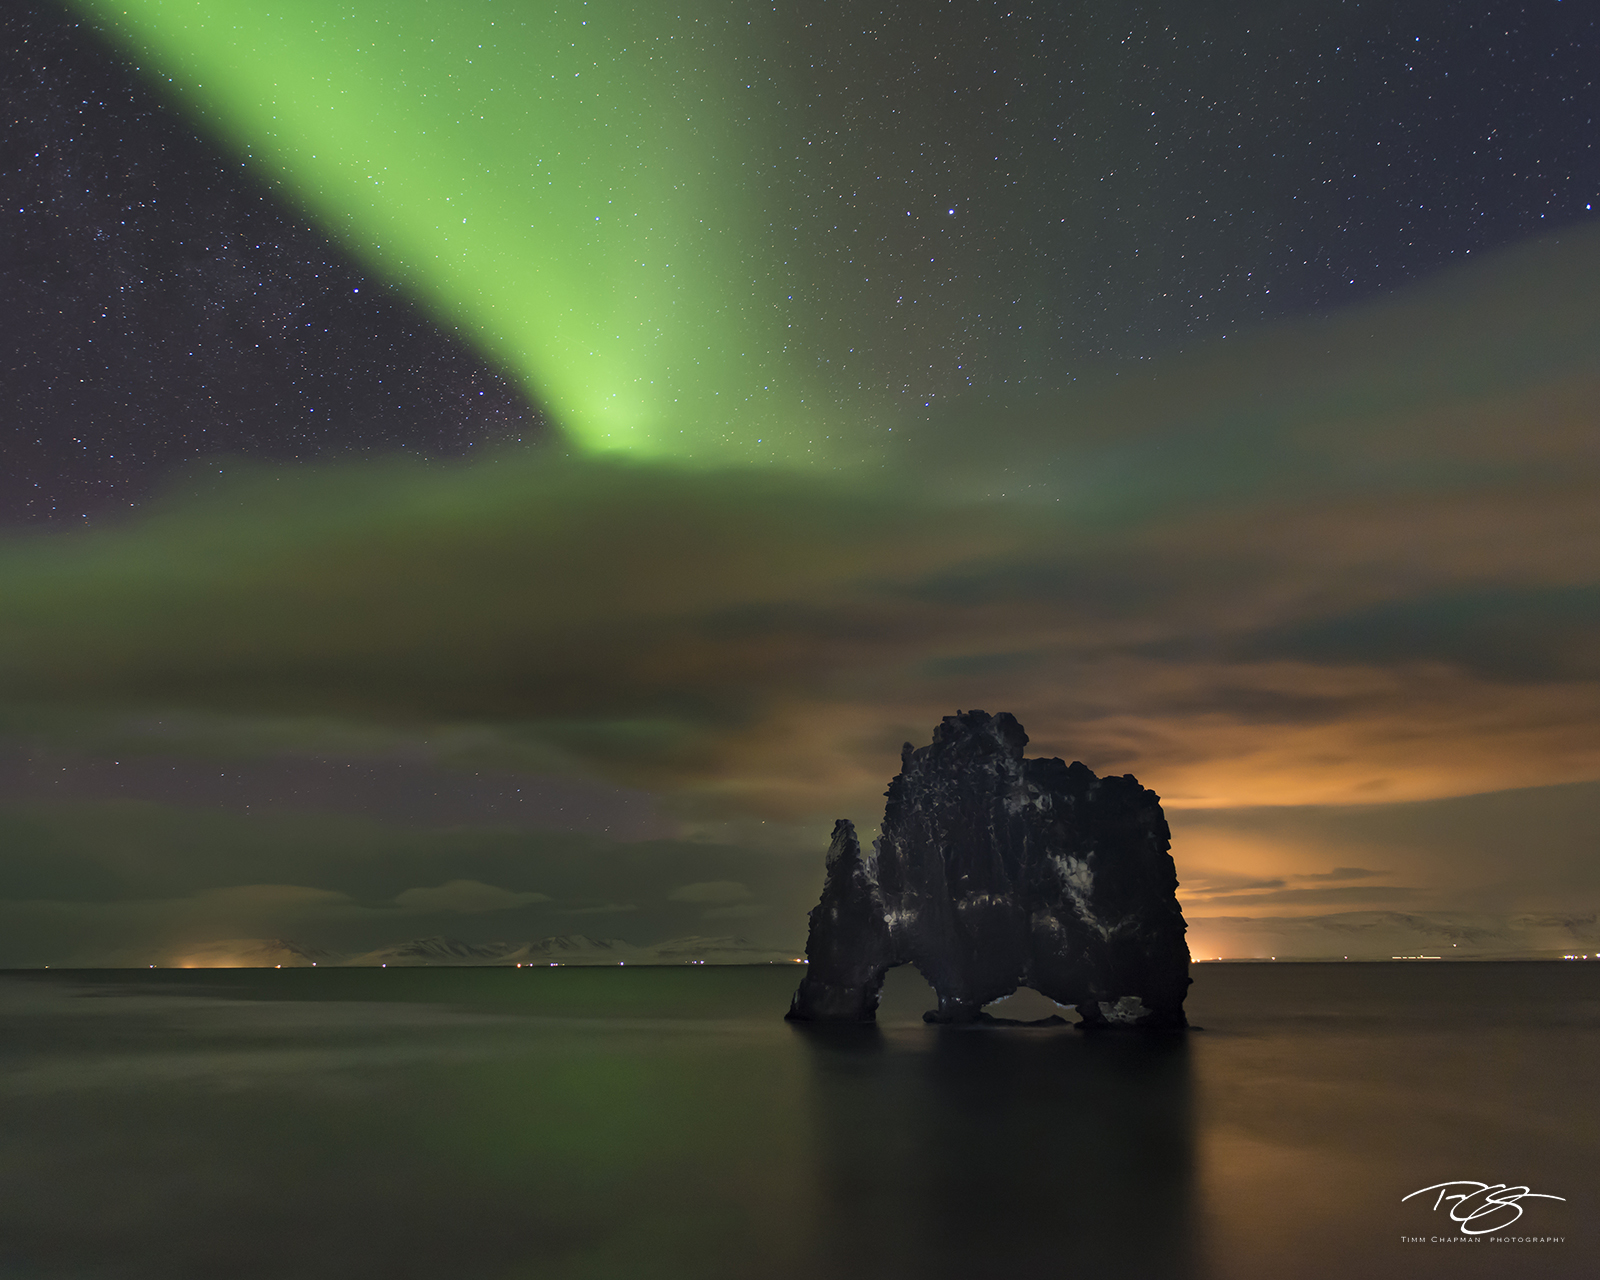 iceland, aurora, borealis, green, red, stars, northern lights, hvitsekur, troll, north iceland, clouds, orange glow, spirit, coronal mass ejection, solar flare, energy, nordic, arctic, alien